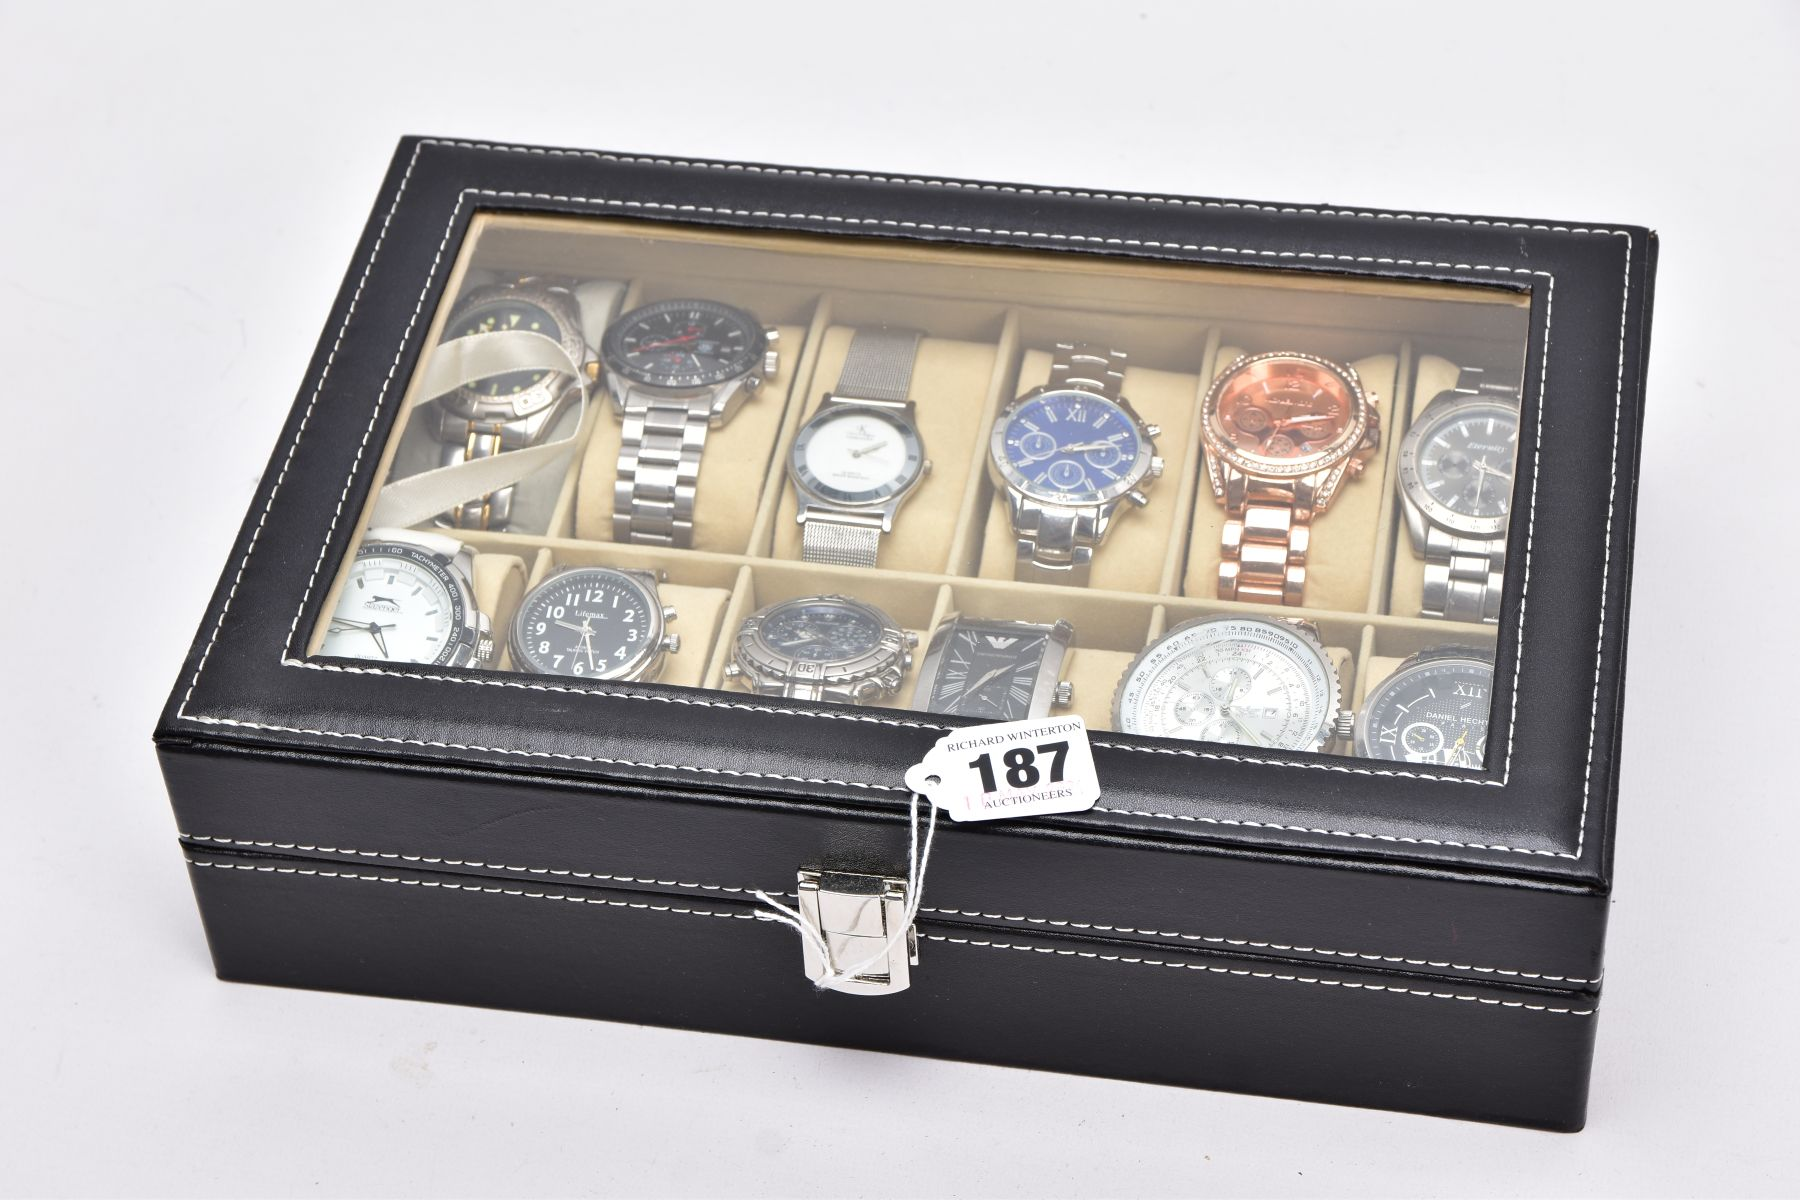 A WATCH DISPLAY CASE WITH WATCHES, a black and glass panelled watch display case with twelve watches - Image 4 of 4